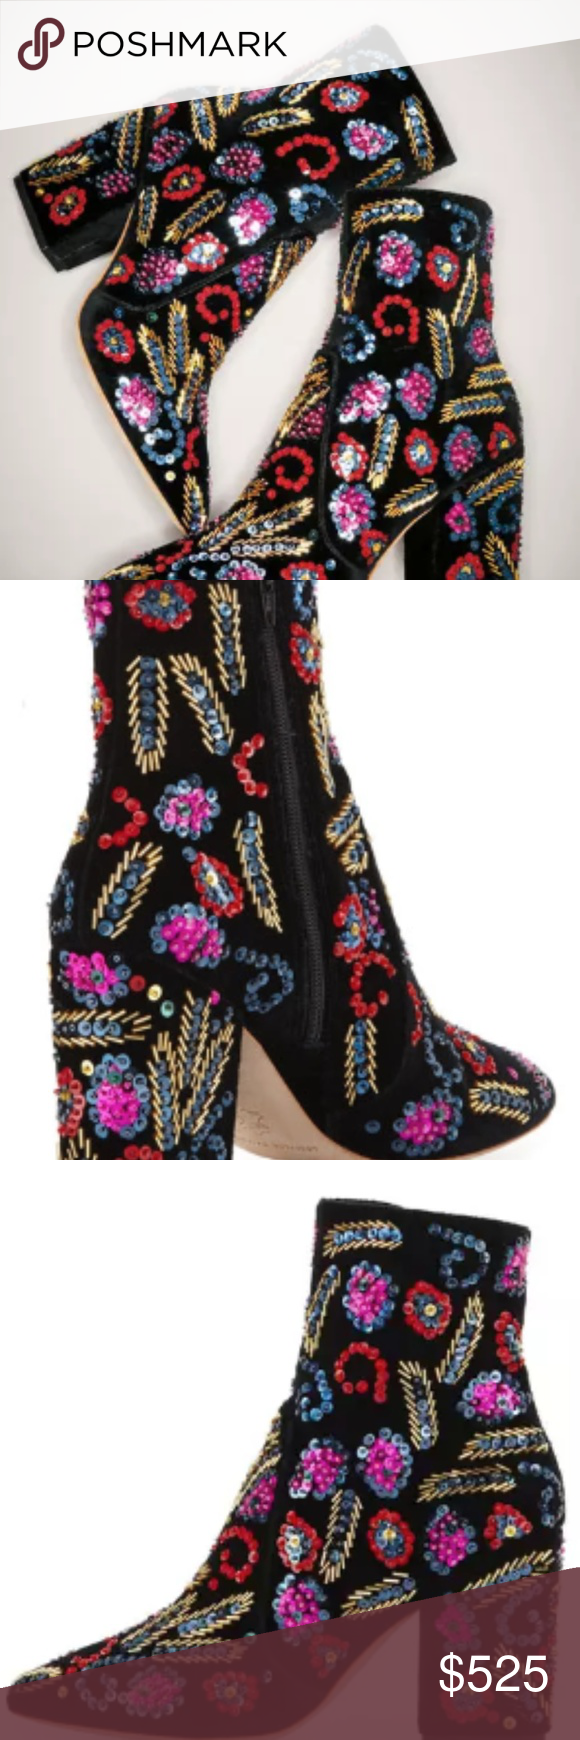 d808d751842f Isla Sequin-Embroidered Block-Heel New Loeffler Randall velvet ankle boot  with paisley sequin embroidery 2.5